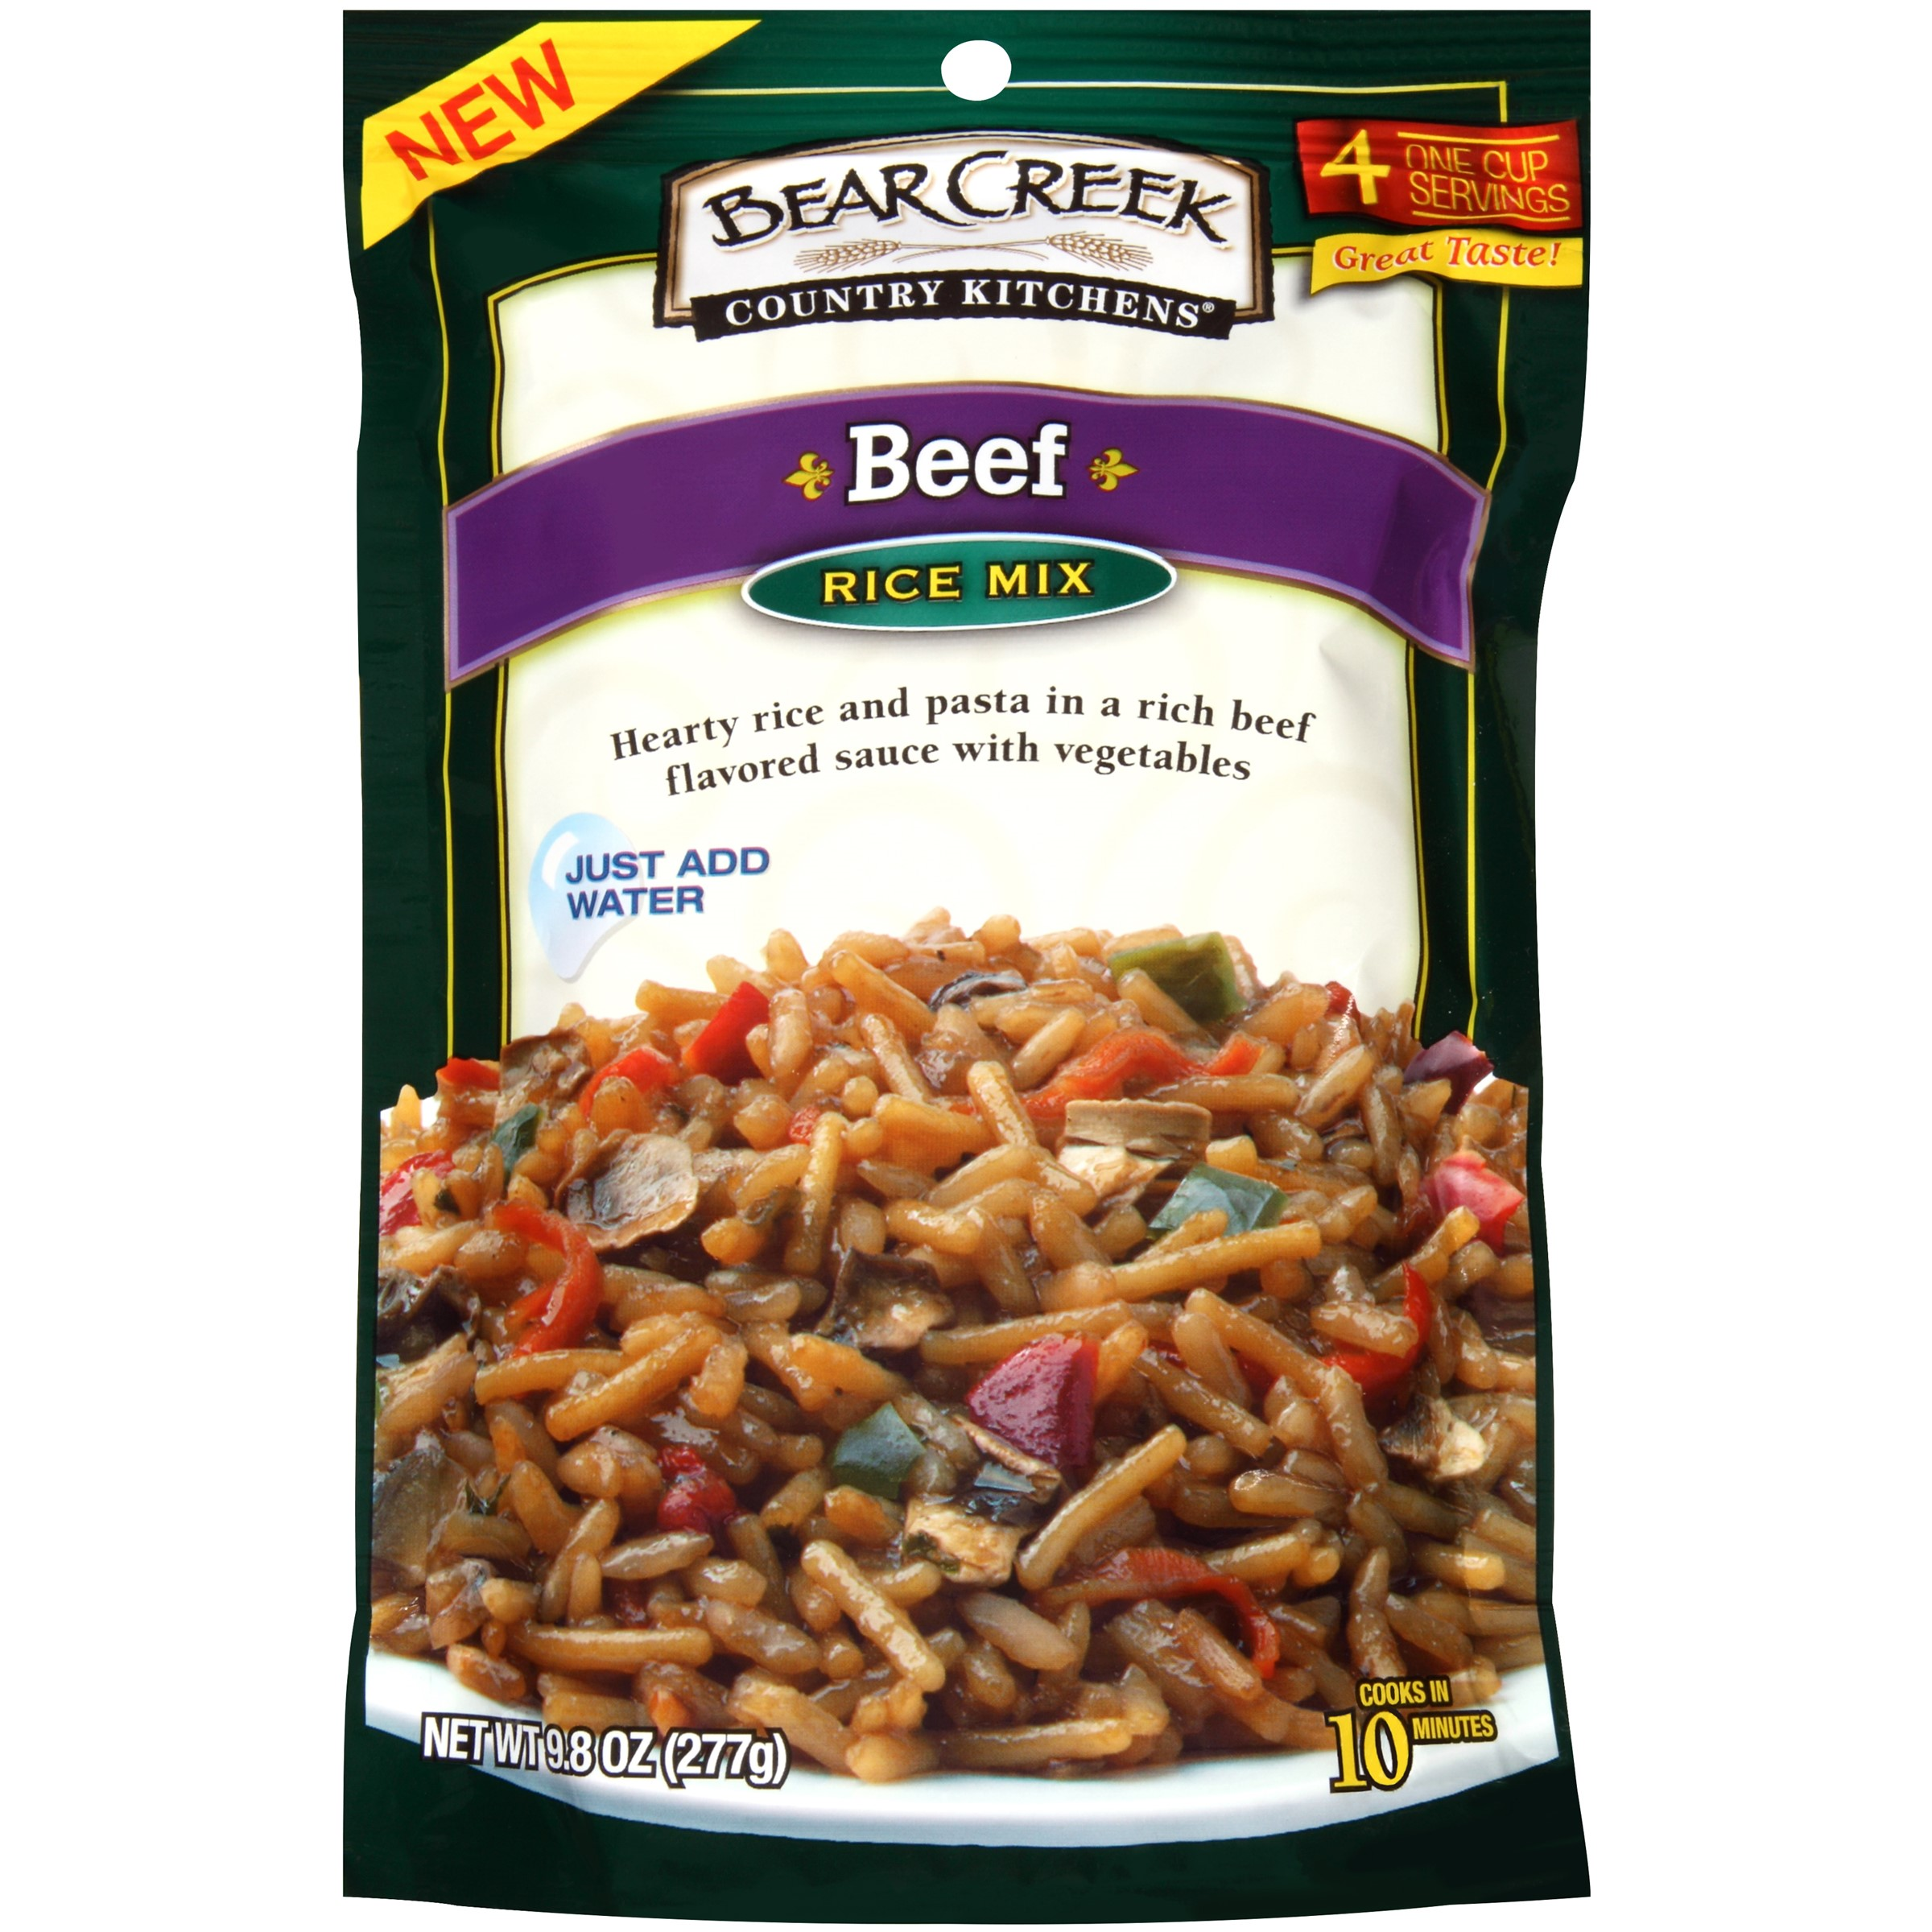 Bear Creek Country Kitchens? Beef Rice Mix 9.8 oz.